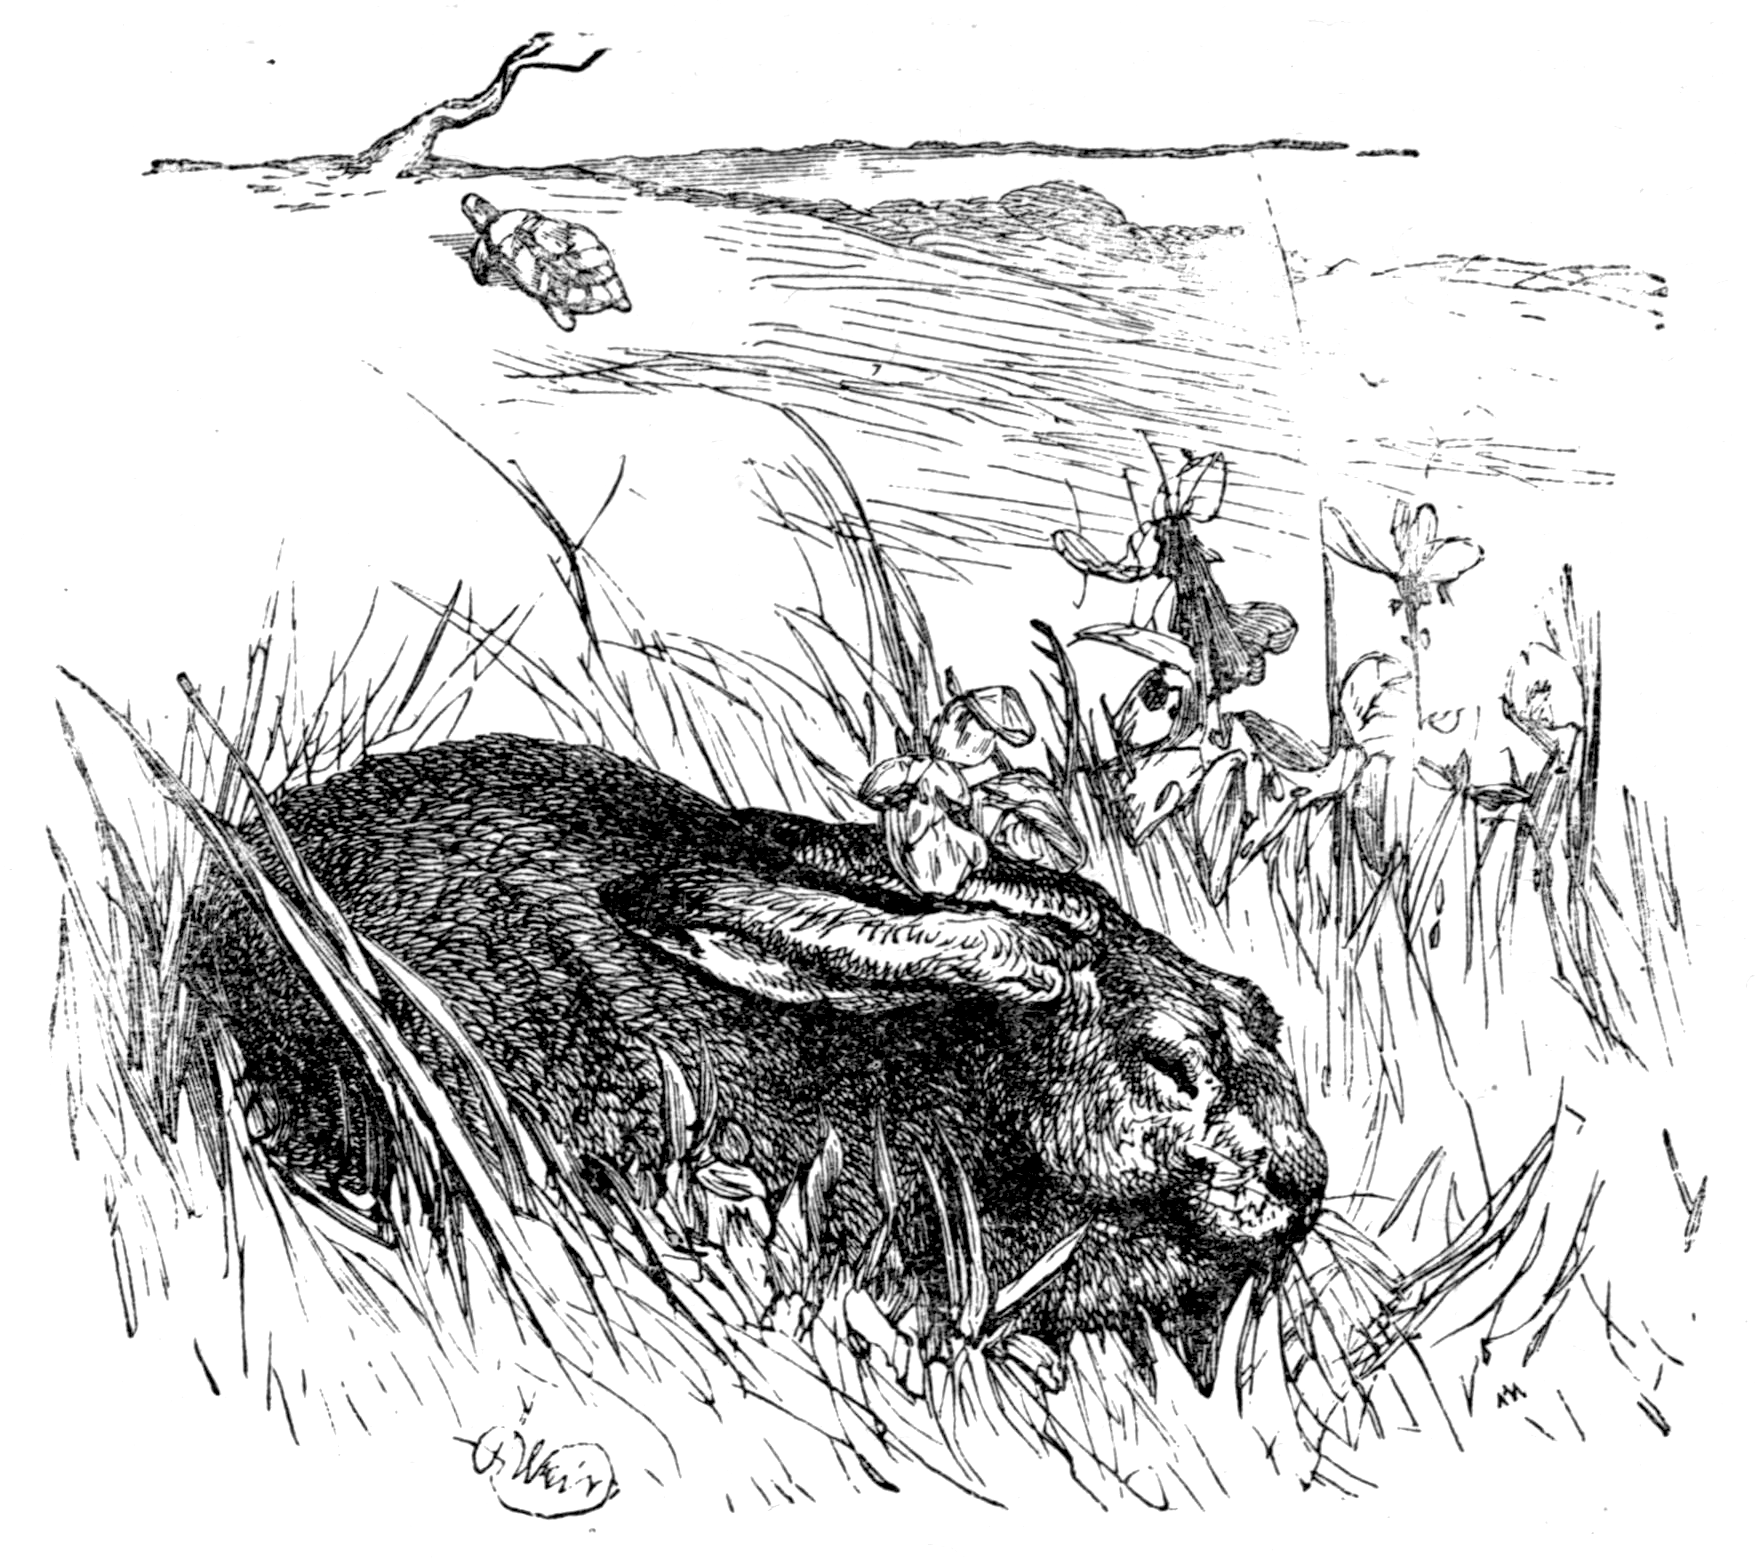 Illustration from a collection of fables